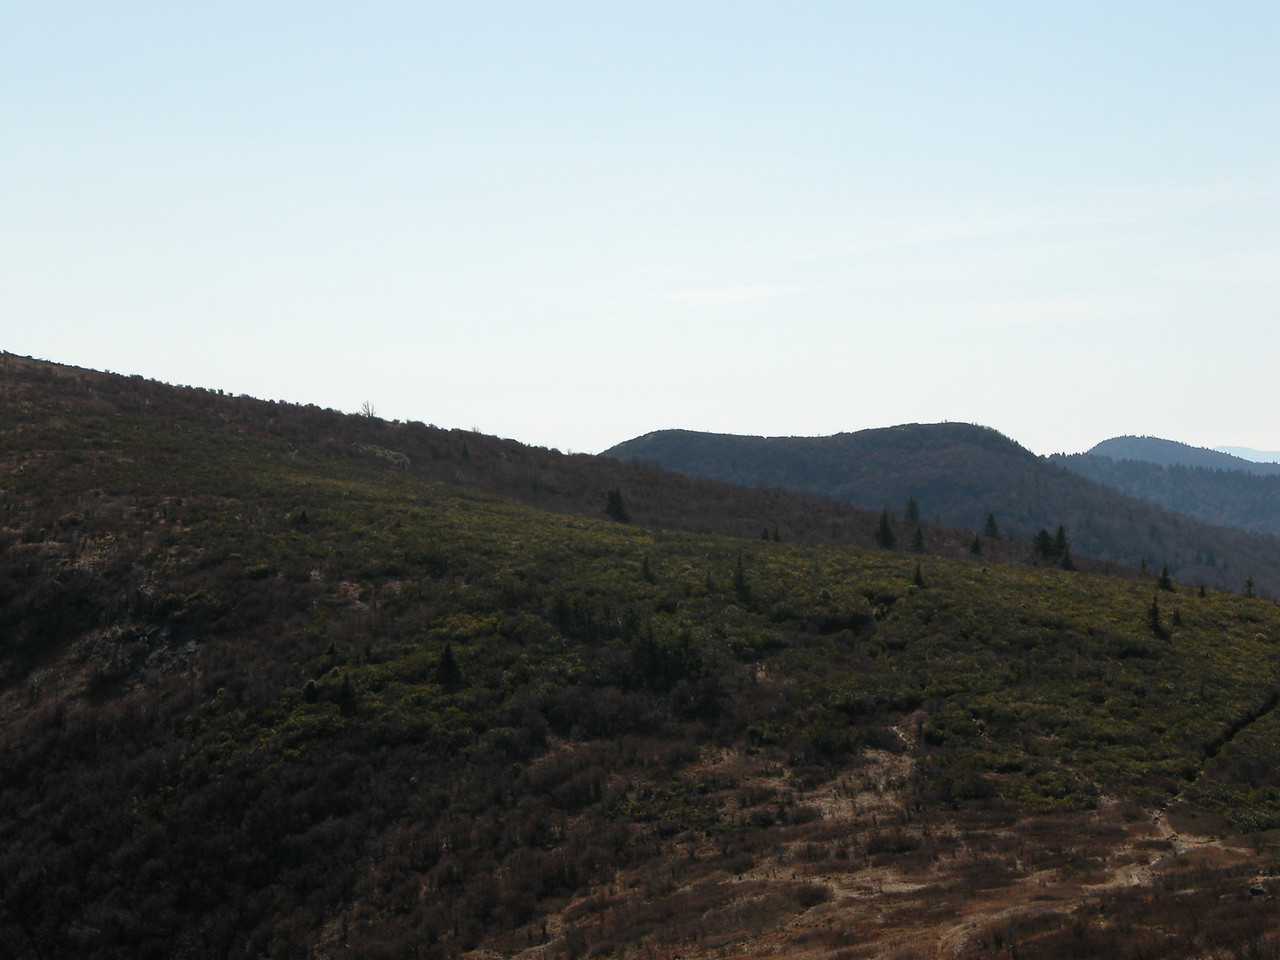 another part of failed attempt at producing a pano from the summit of Tennent. Sam Knob in the background